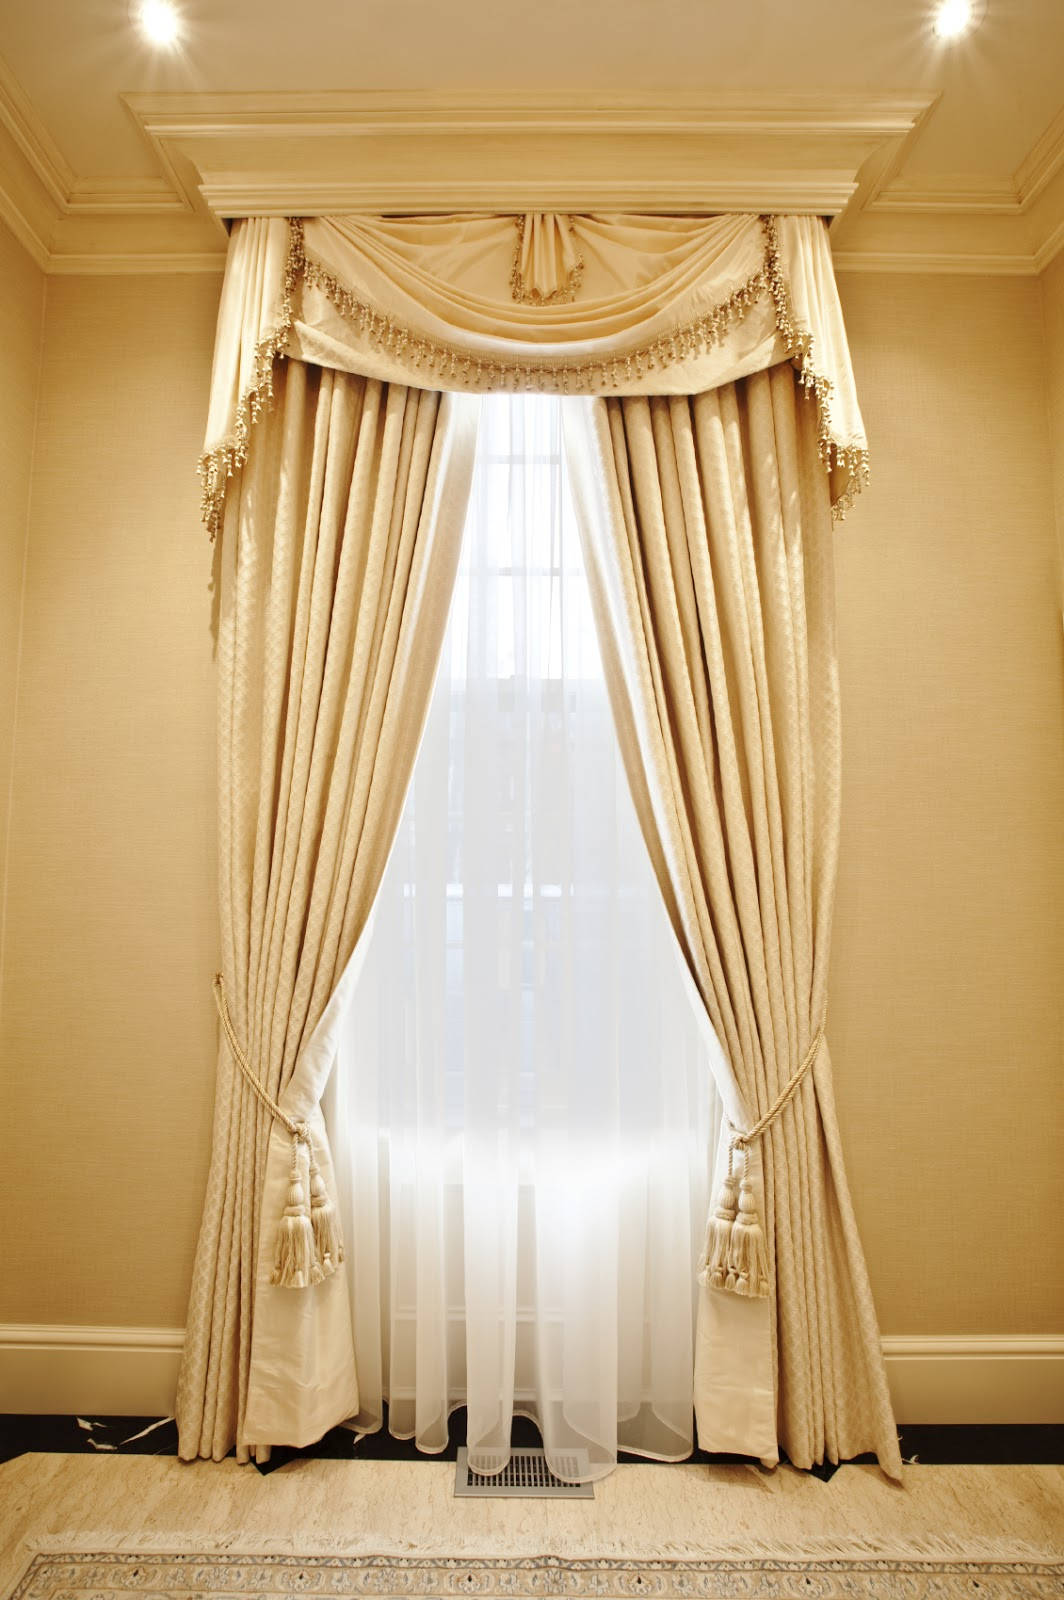 Panel Curtains For Sliding Doors Glass Ideas Ikea Room Divider